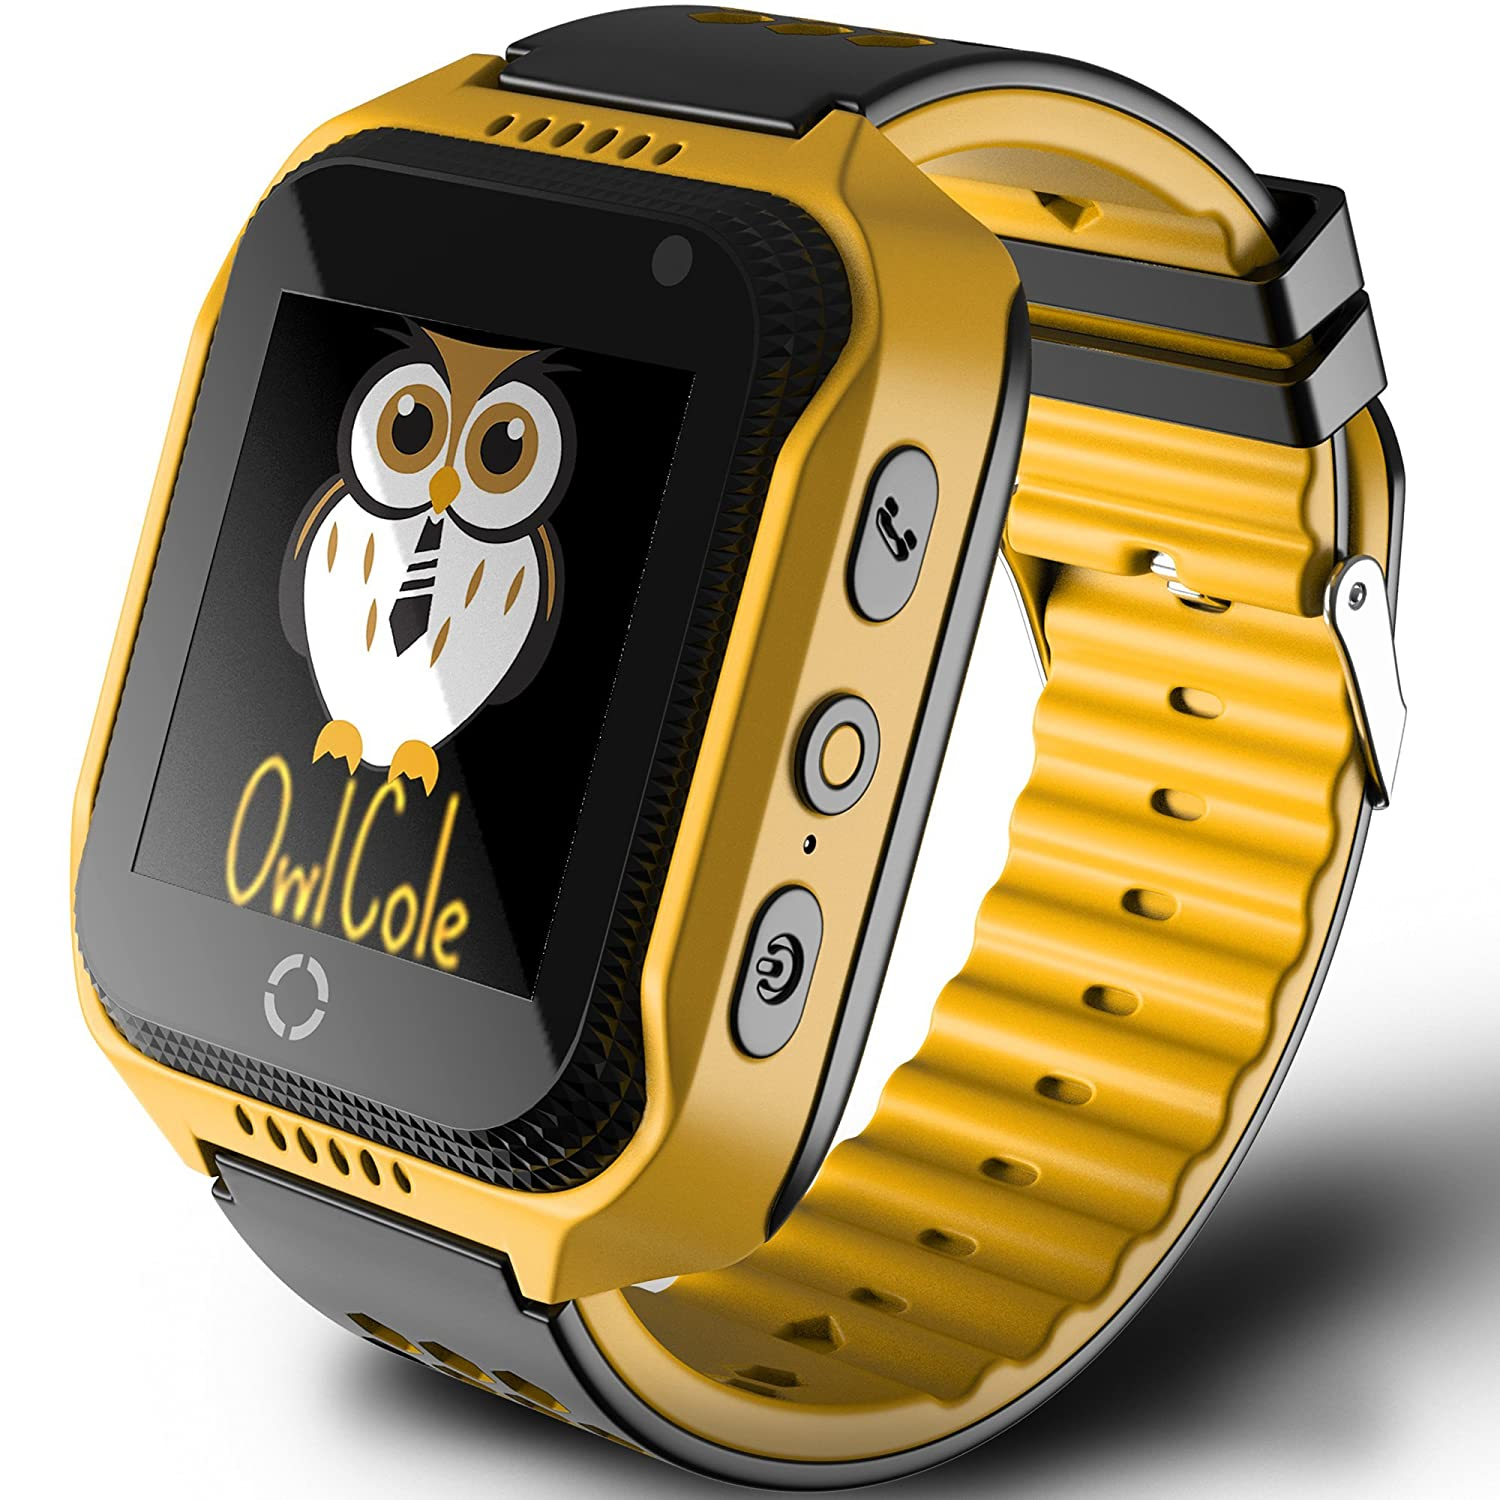 Smart Watch For Kids Best Phone Watch Birthday Holiday Gift With Gps Tracker Camera Touchscreen Sos For I Phone Android Smartphone Pedometer For Children Boys Girls by Owl Cole